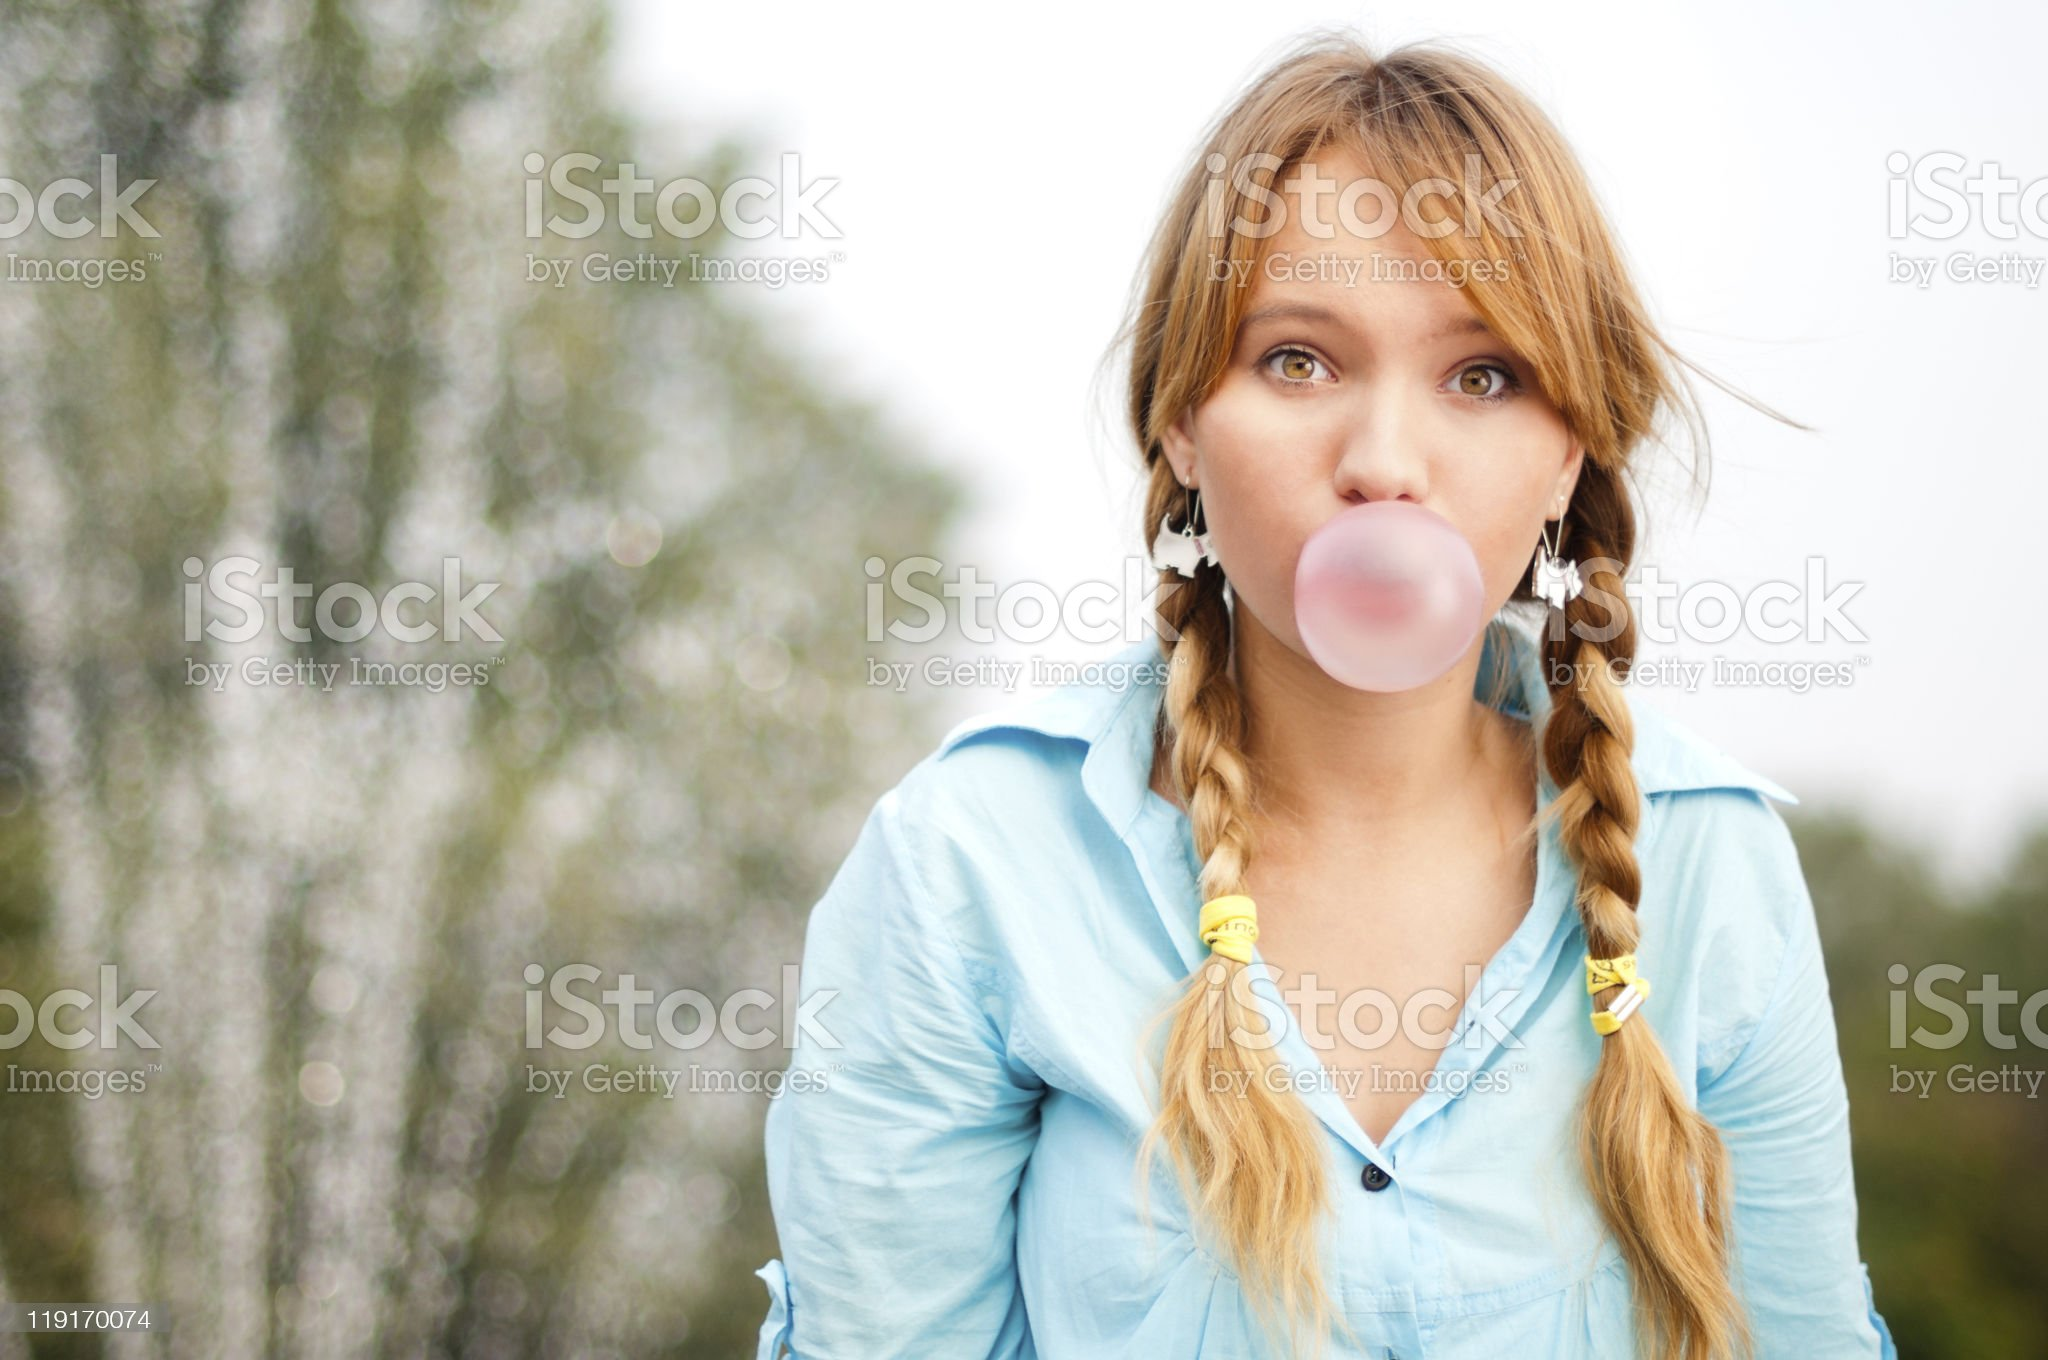 Young redheaded student in pigtail braids blows bubblegum royalty-free stock photo